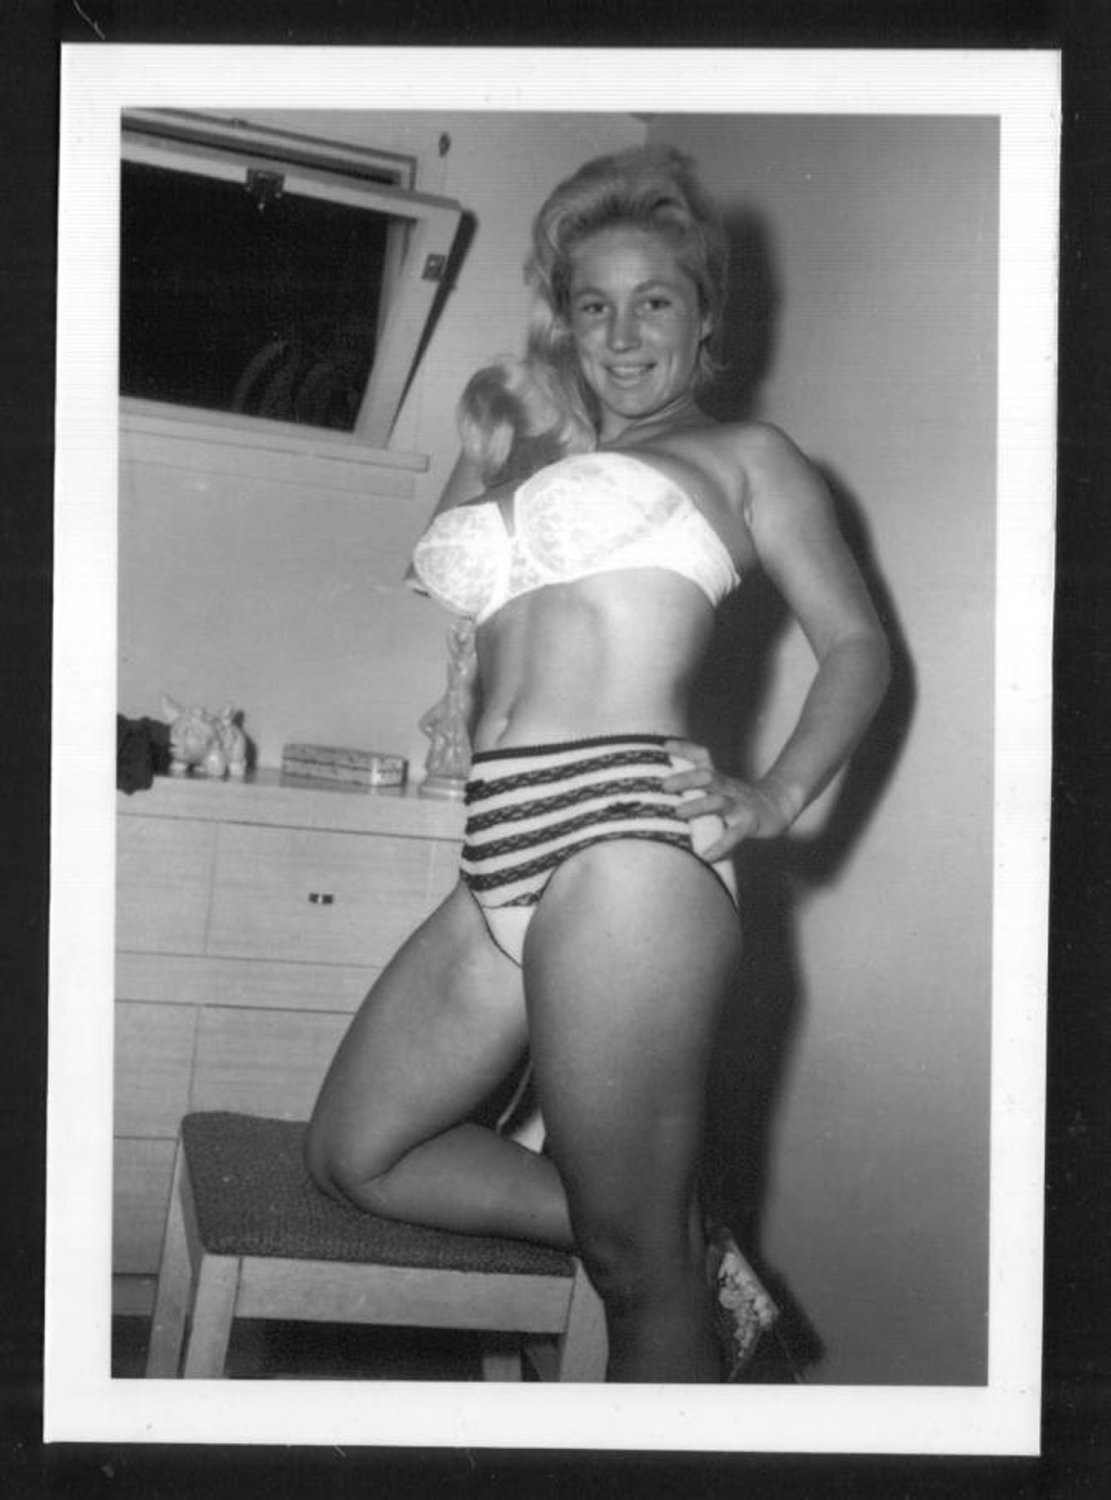 VIRGINIA BELL BUSTY IN WHITE BRA PANTIES POSE NEW REPRINT 5 X 7 #77